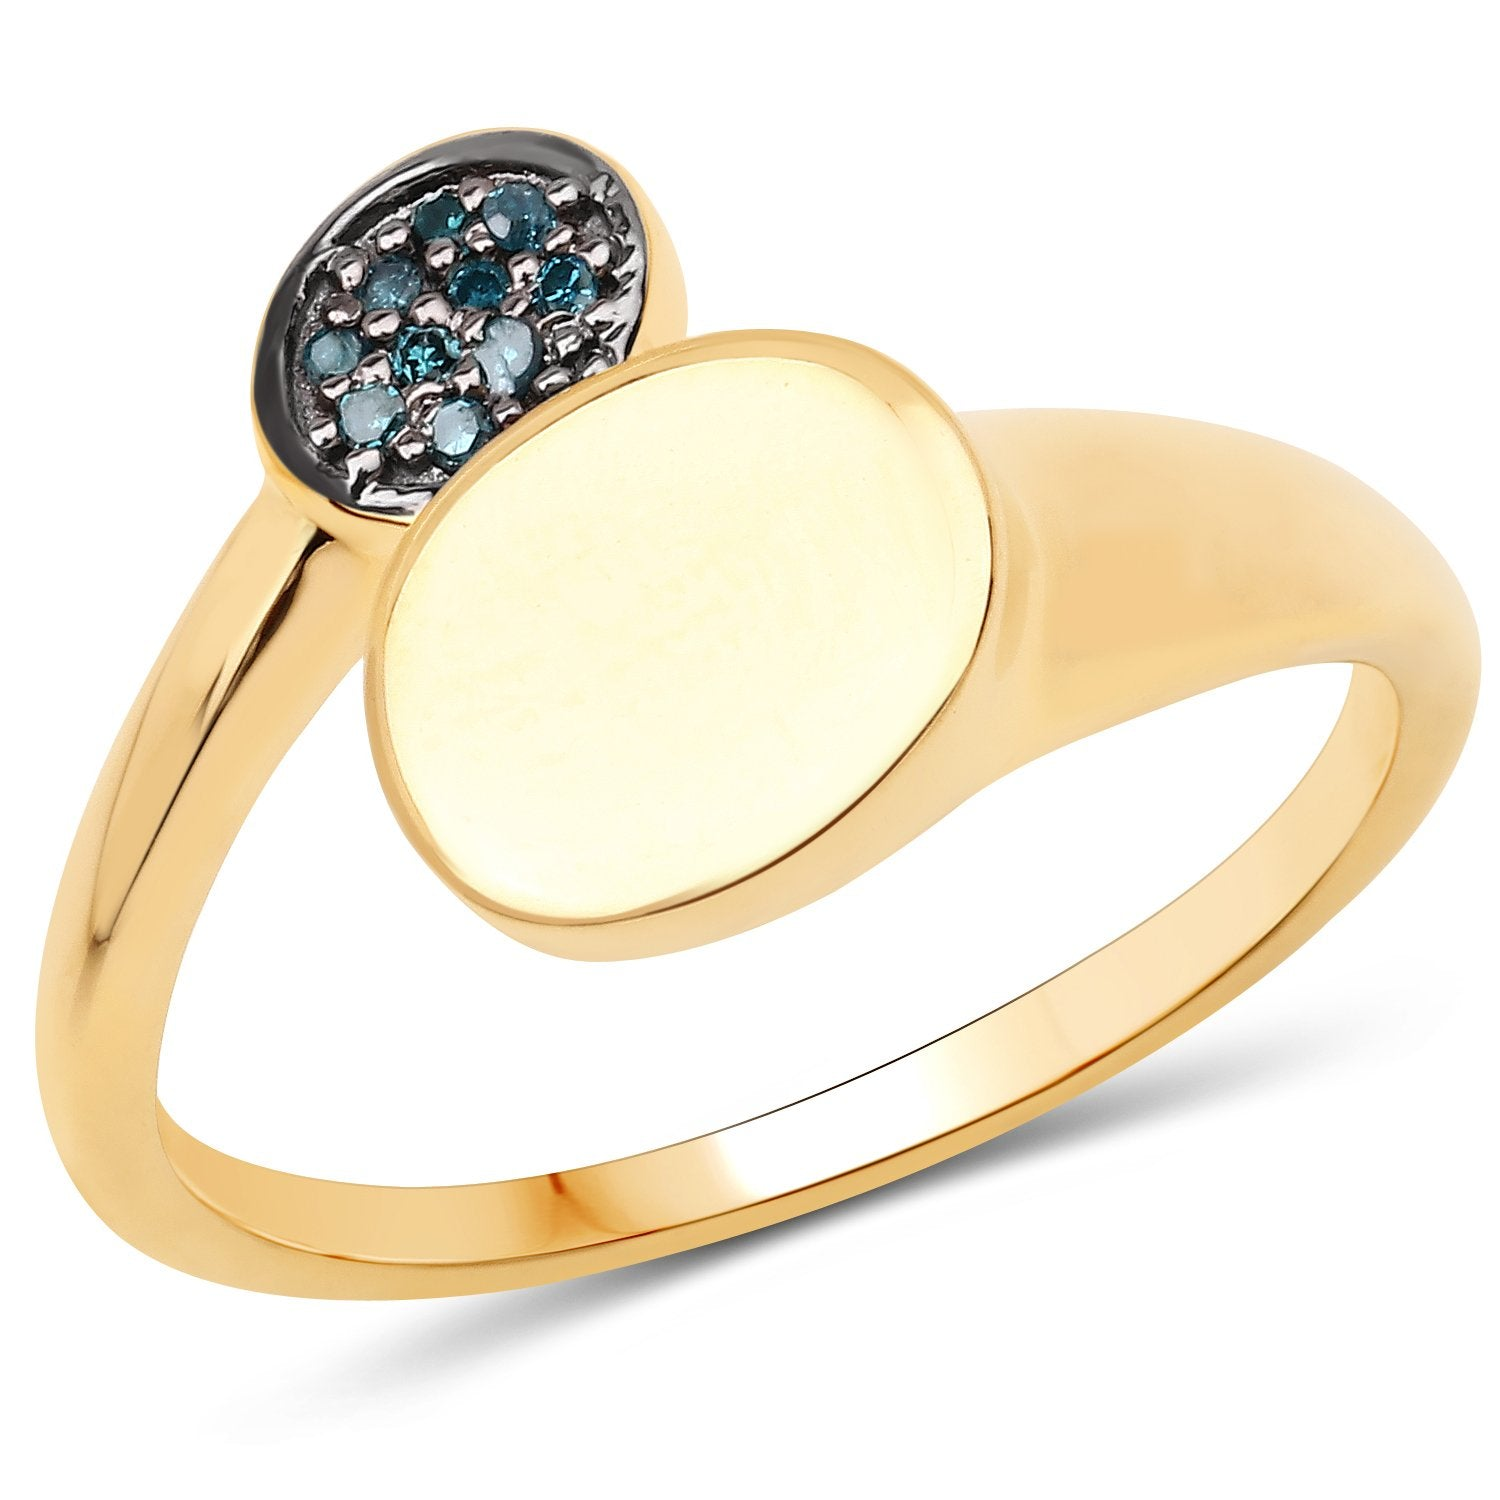 LoveHuang 0.05 Carats Genuine Blue Diamond (I-J, I2-I3) Minimalist Ring Solid .925 Sterling Silver With 18KT Yellow Gold Plating